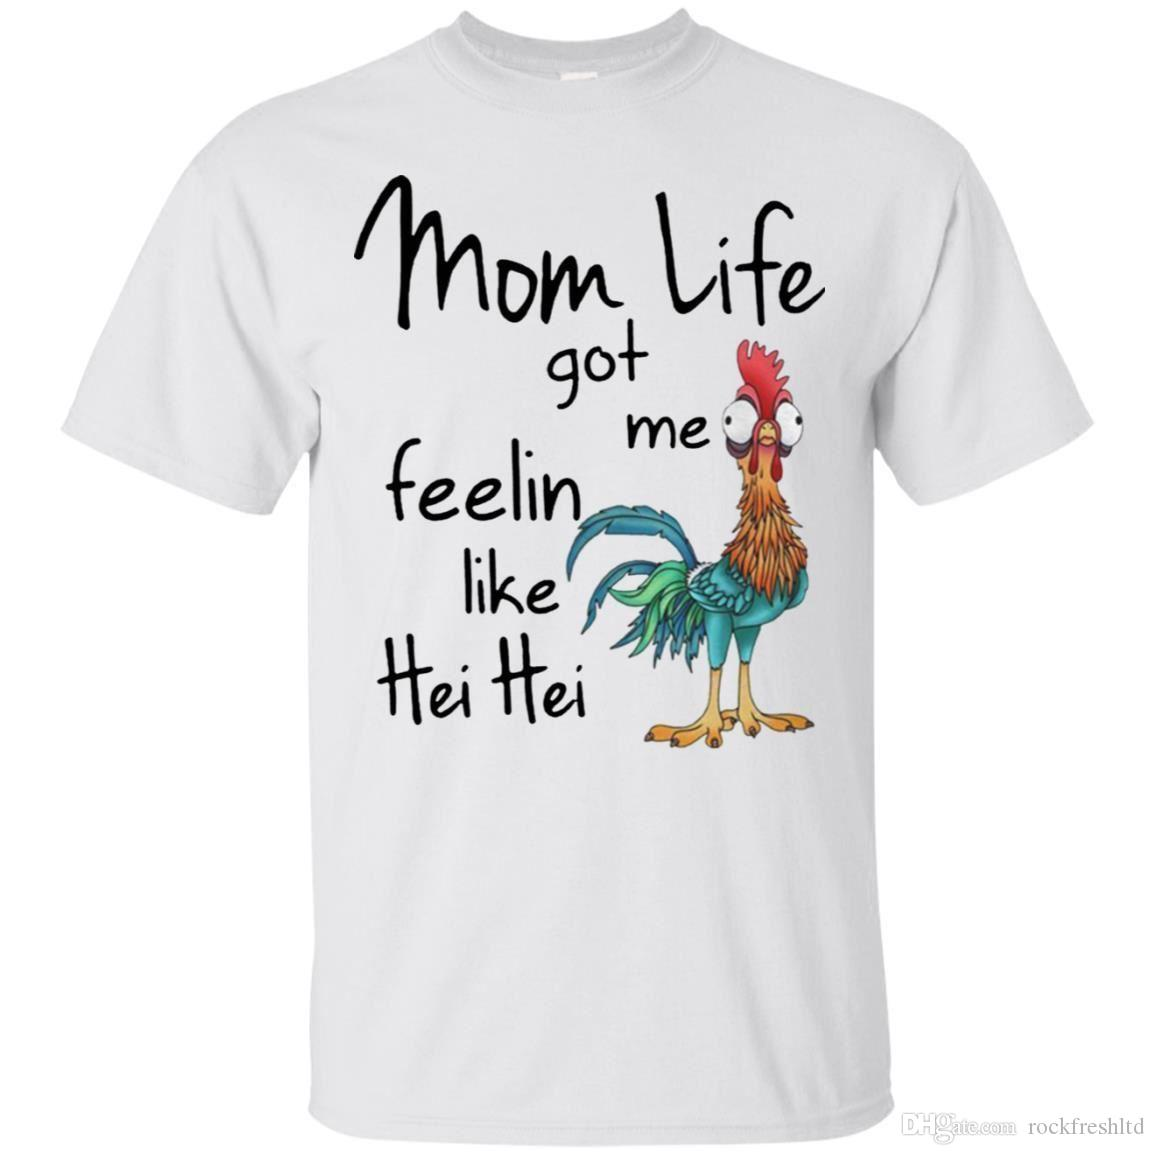 22b4817f Mom Life Got Me Feelin Like Hei Hei T Shirt Funny Tee Shirt Short Sleeve S  5XL Funny T Shirt Designs Make A Tee Shirt From Rockfreshltd, $10.18|  DHgate.Com